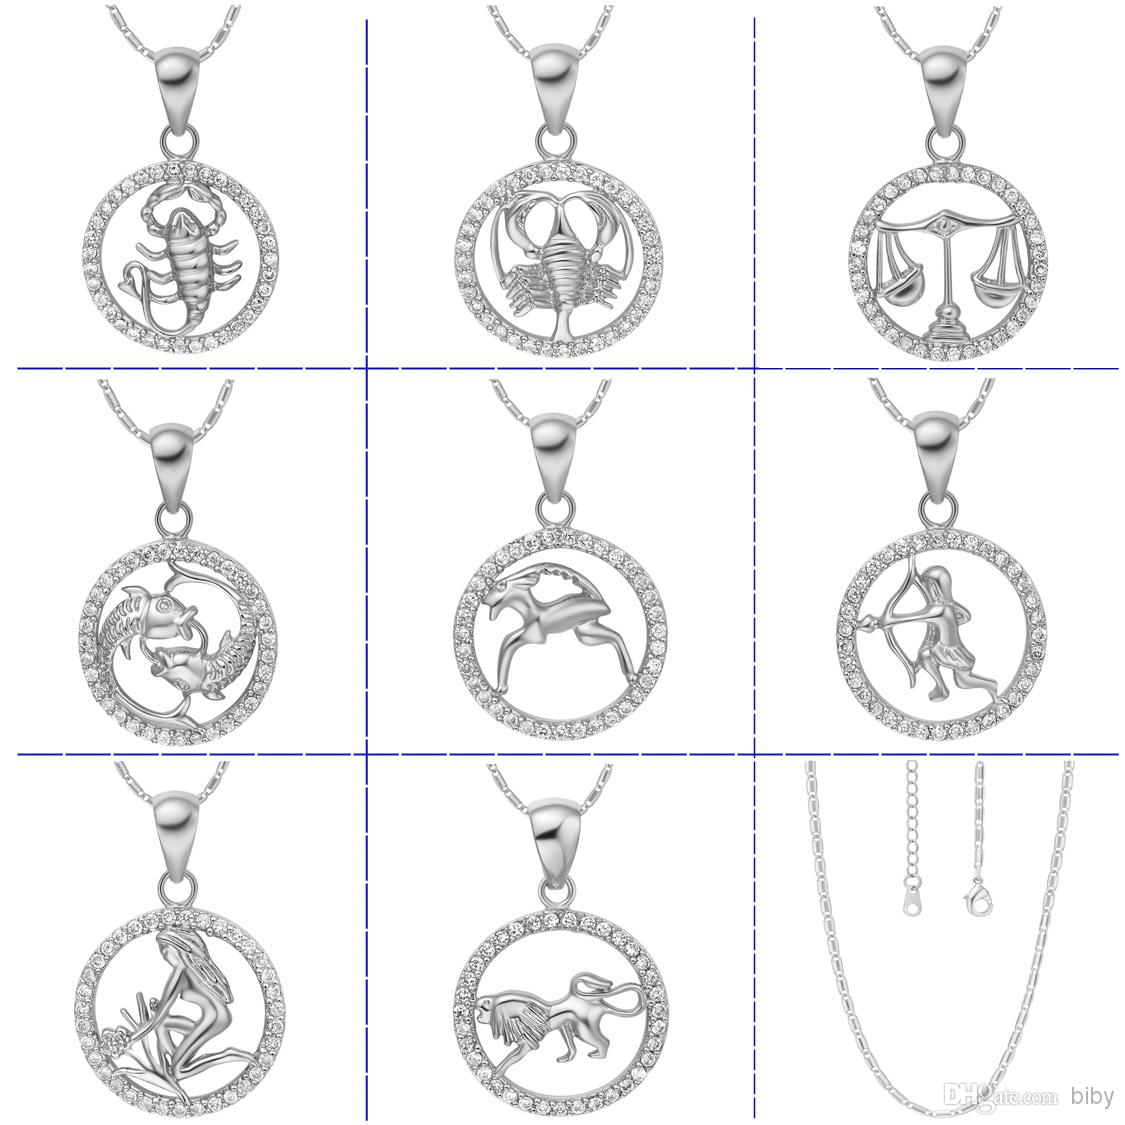 Wholesale 925 silver necklace rose gold pendants zodiac pendant wholesale 925 silver necklace rose gold pendants zodiac pendant without chainfashion necklaces for women 2014 chain necklace mens necklace from biby mozeypictures Gallery